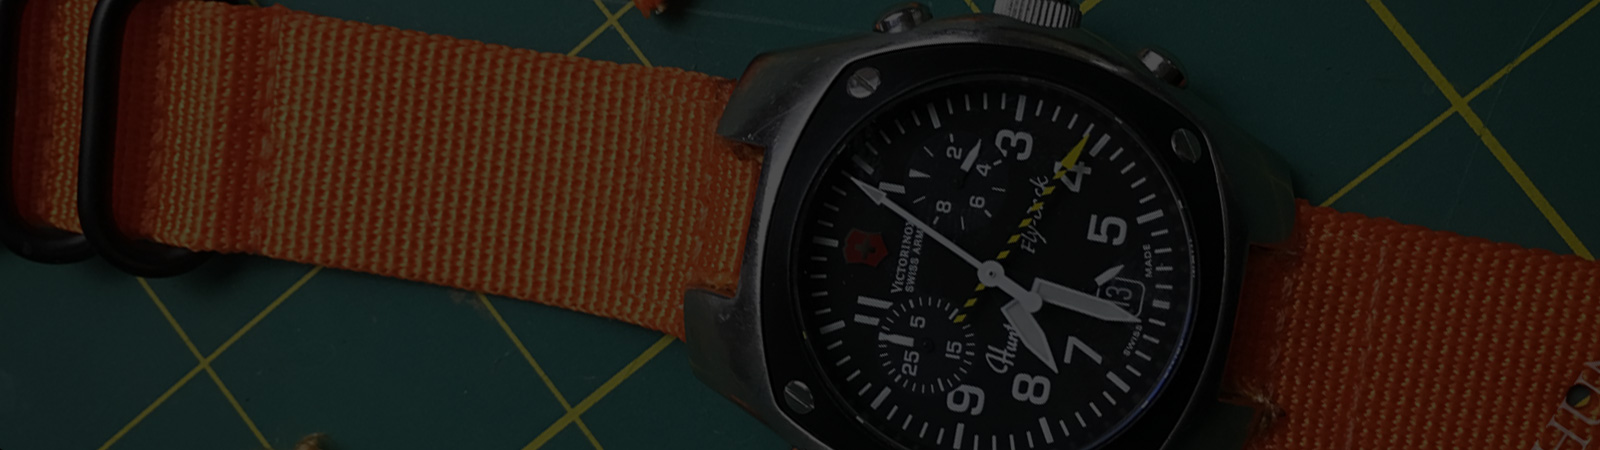 STRAP SWAP: Real World Experiments to Replace Hunter Watch Bands by Victorinox Swiss Army